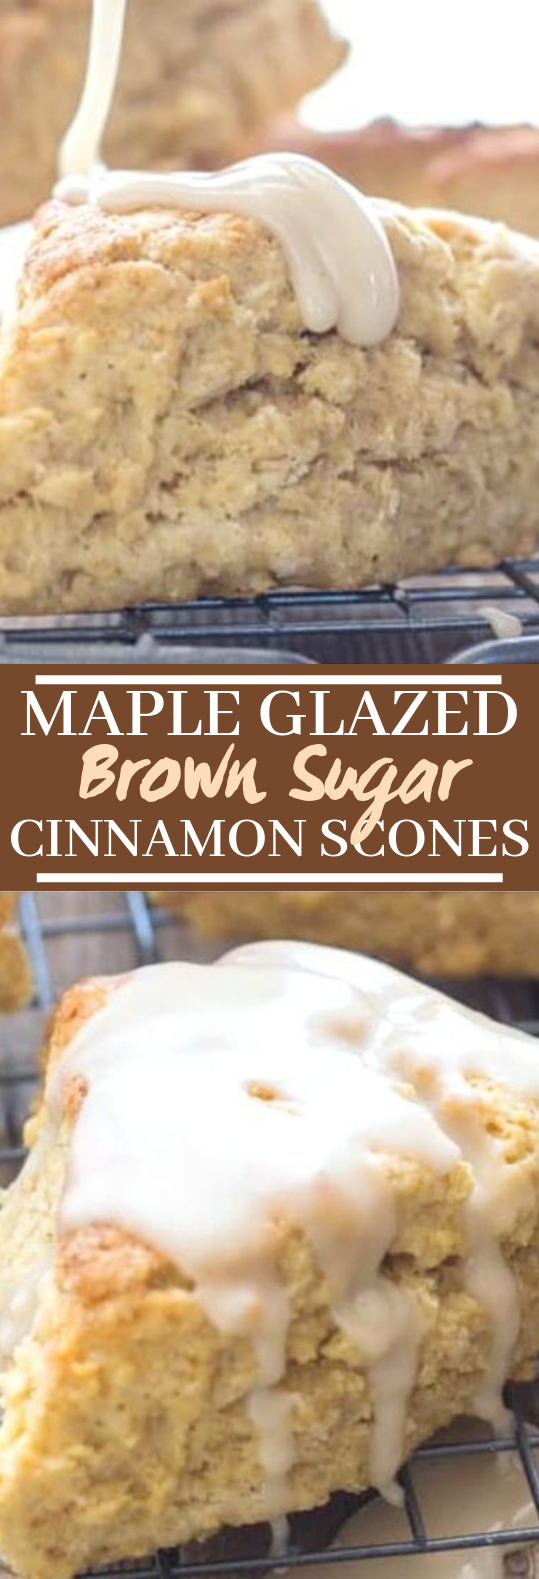 Maple Glazed Brown Sugar Cinnamon Scones #desserts #baking